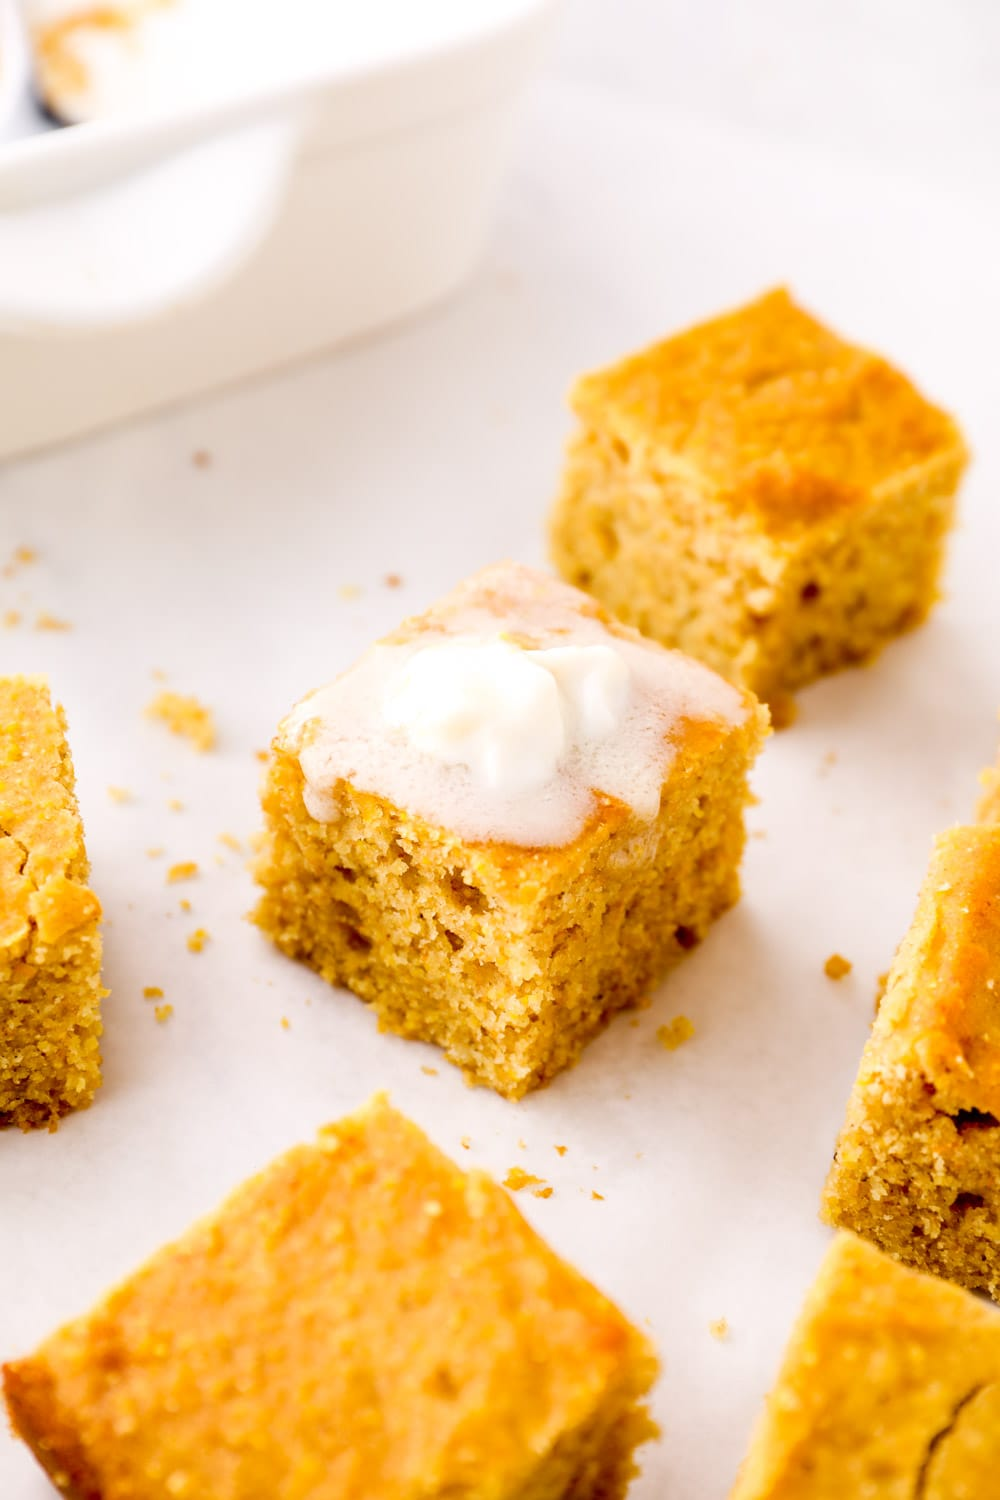 A slice of Gluten Free Cornbread with vegan butter melting on top.